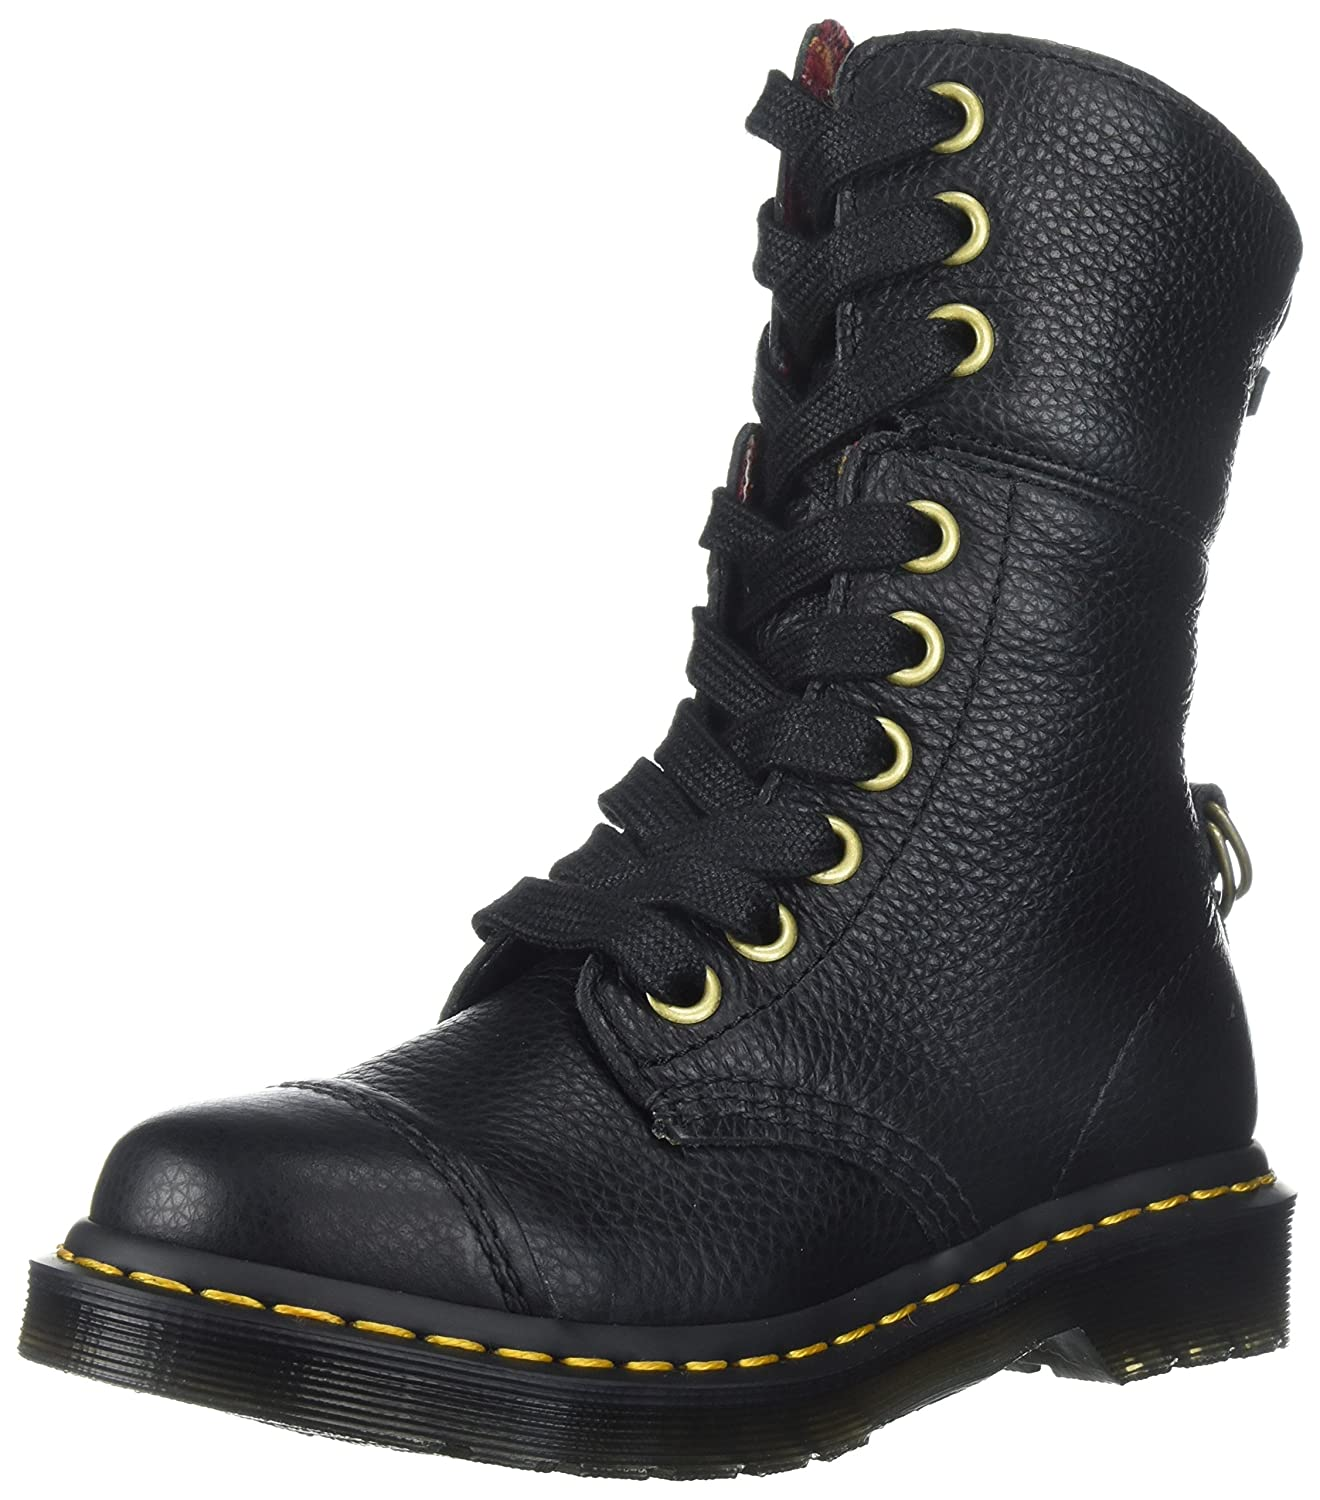 Dr. Martens Women's Aimilita Black Aunt Sally Leather Fashion Boot B071RRDGWT 6 Medium UK (8 US)|Black